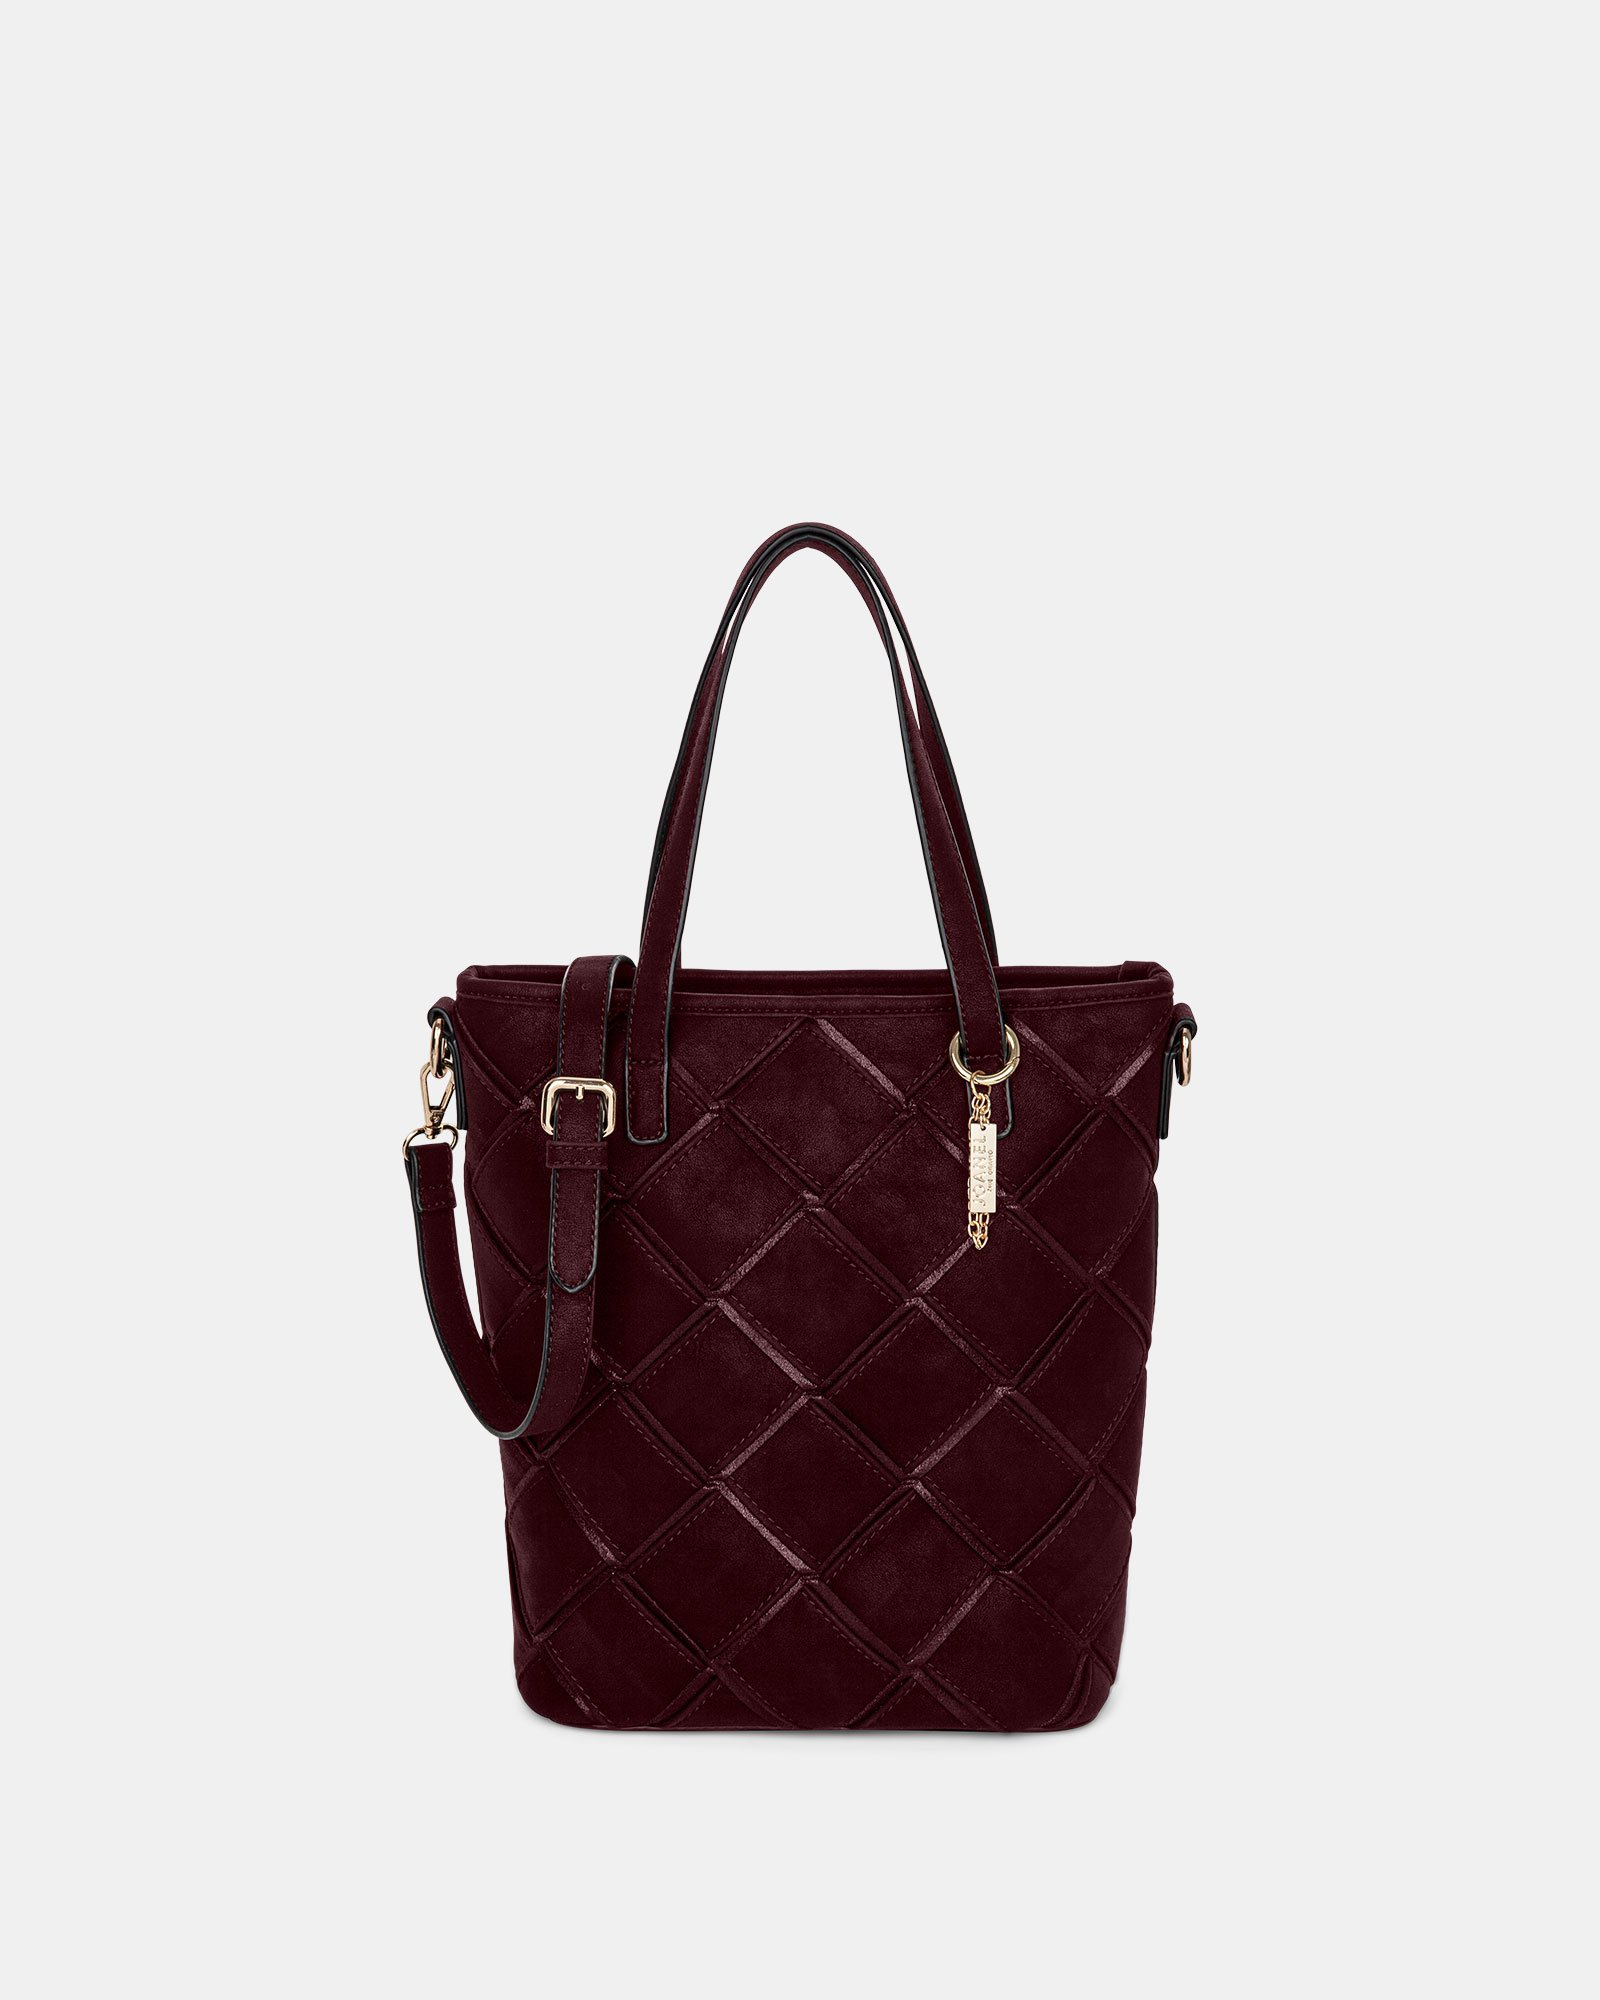 In Between - Tote bag with Adjustable crossbody strap - Red - Joanel - Zoom